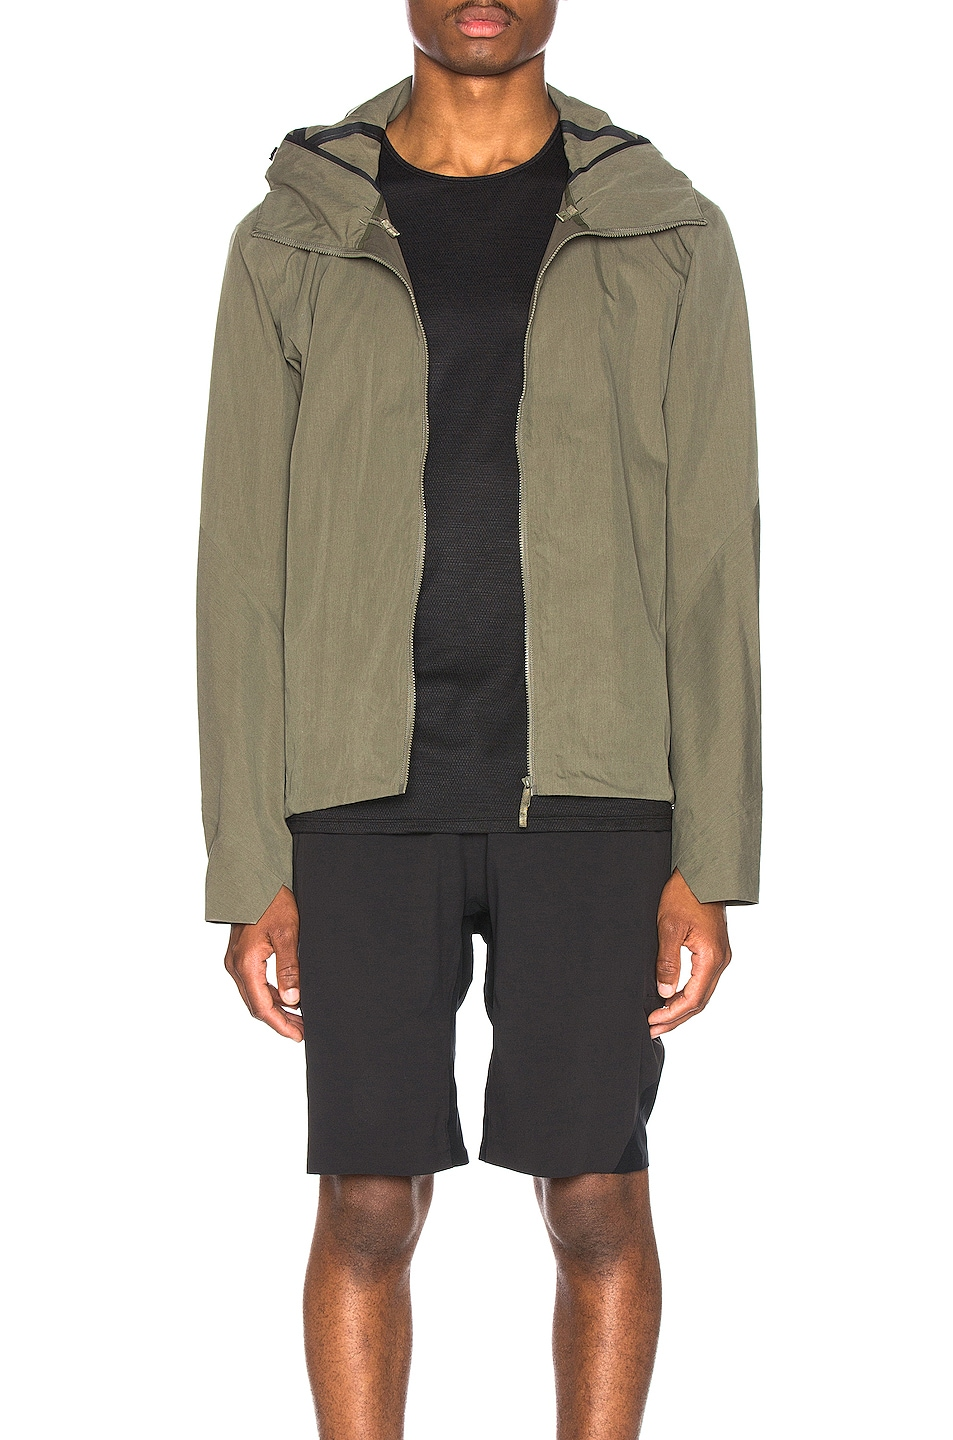 Image 1 of Veilance Isogon Jacket in Loden